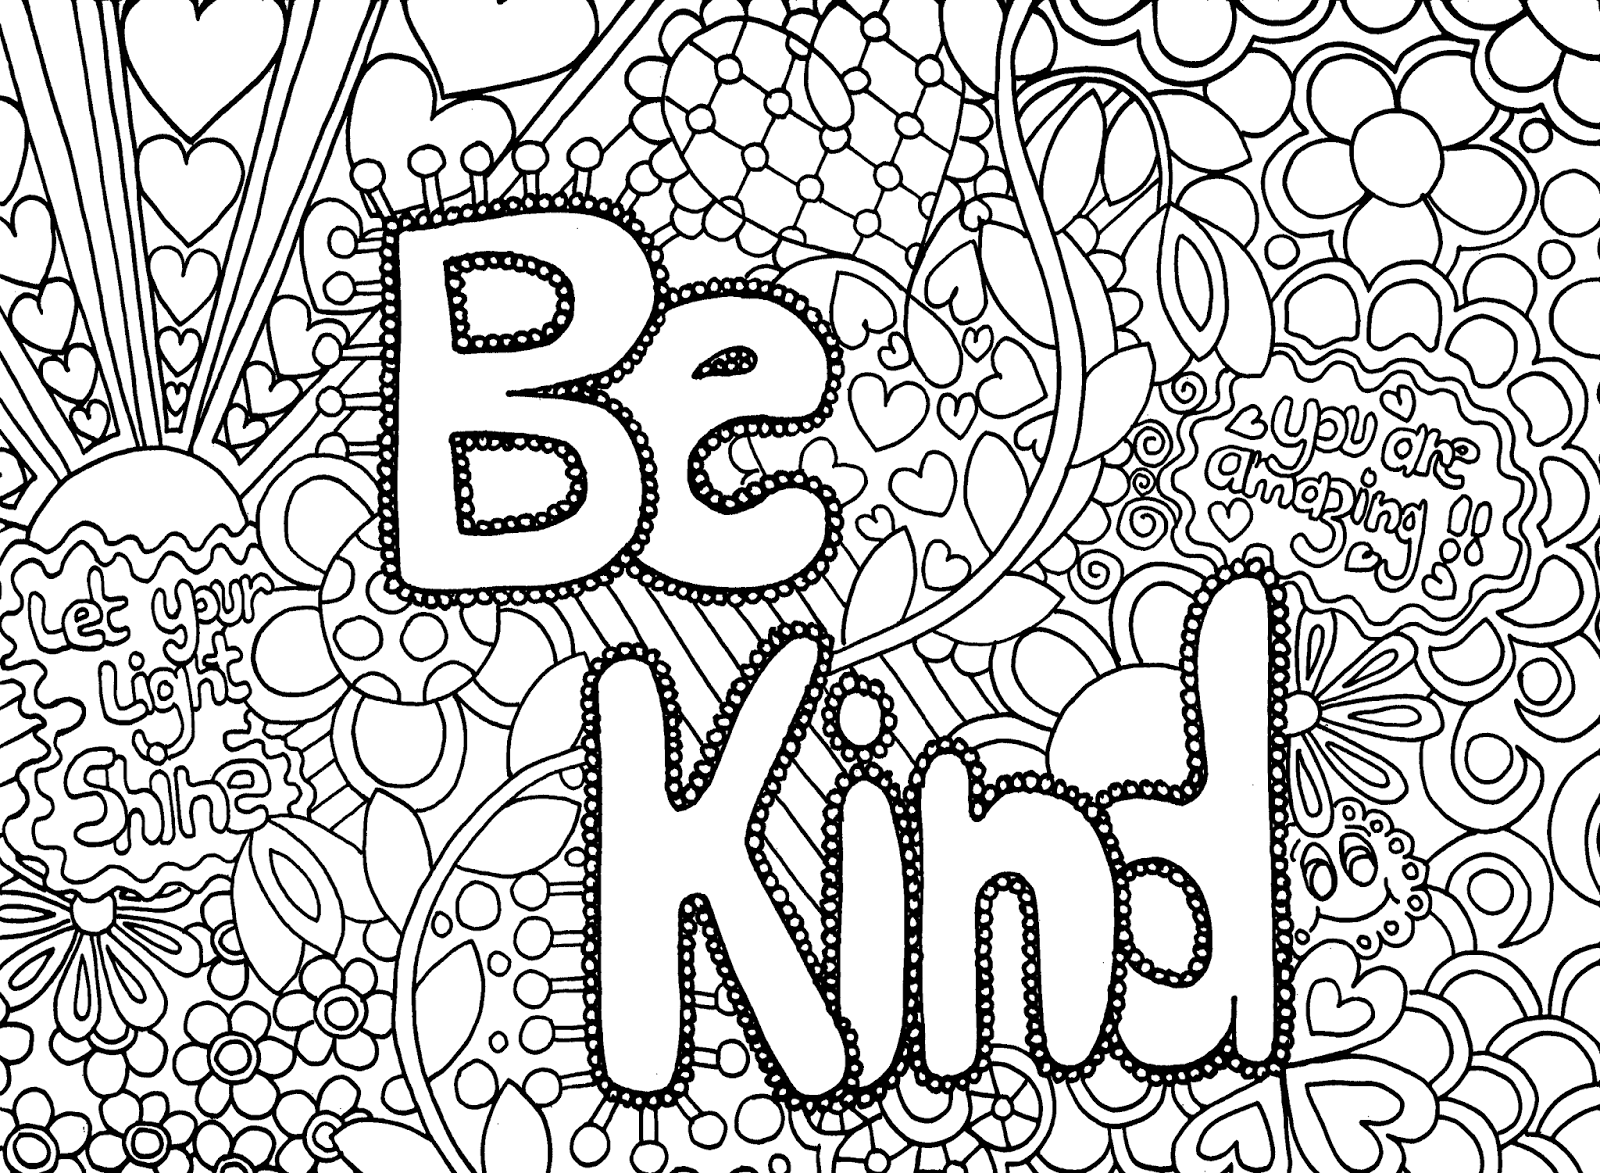 Quotes coloring pages to print - Free Coloring Pages For Adults To Print Image 8